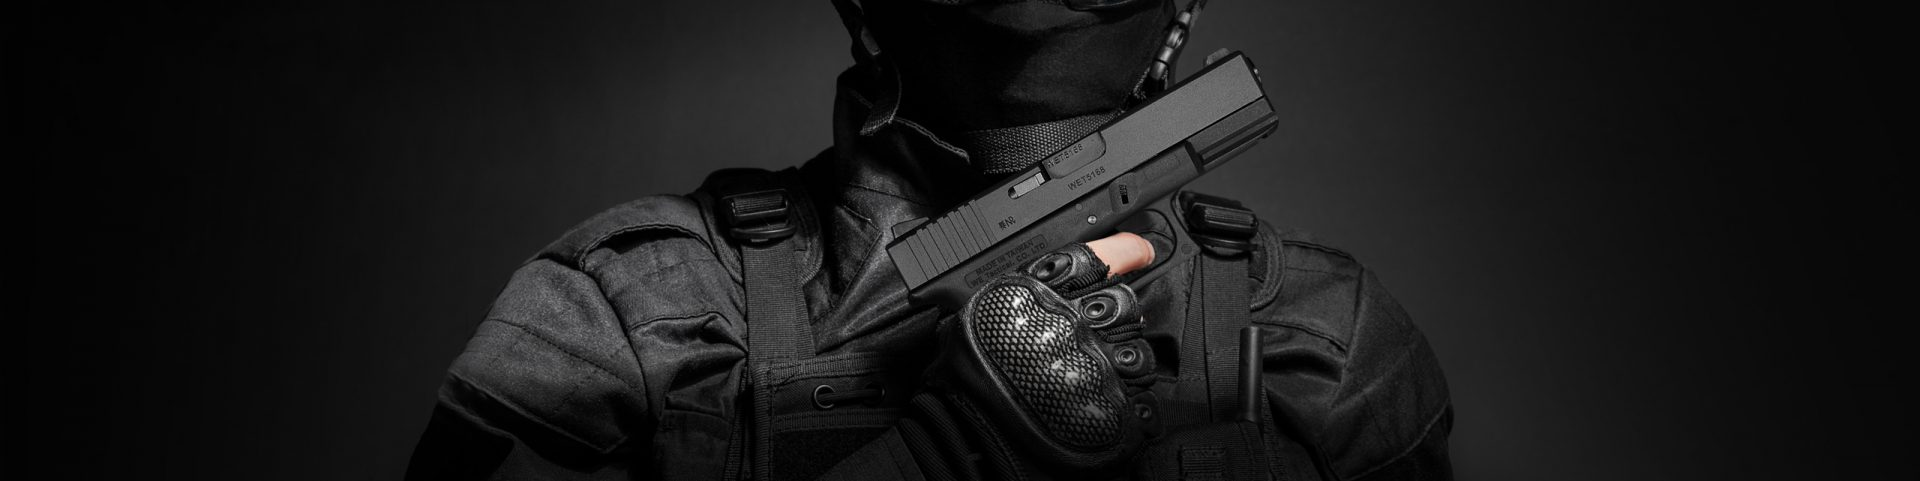 airsoft products